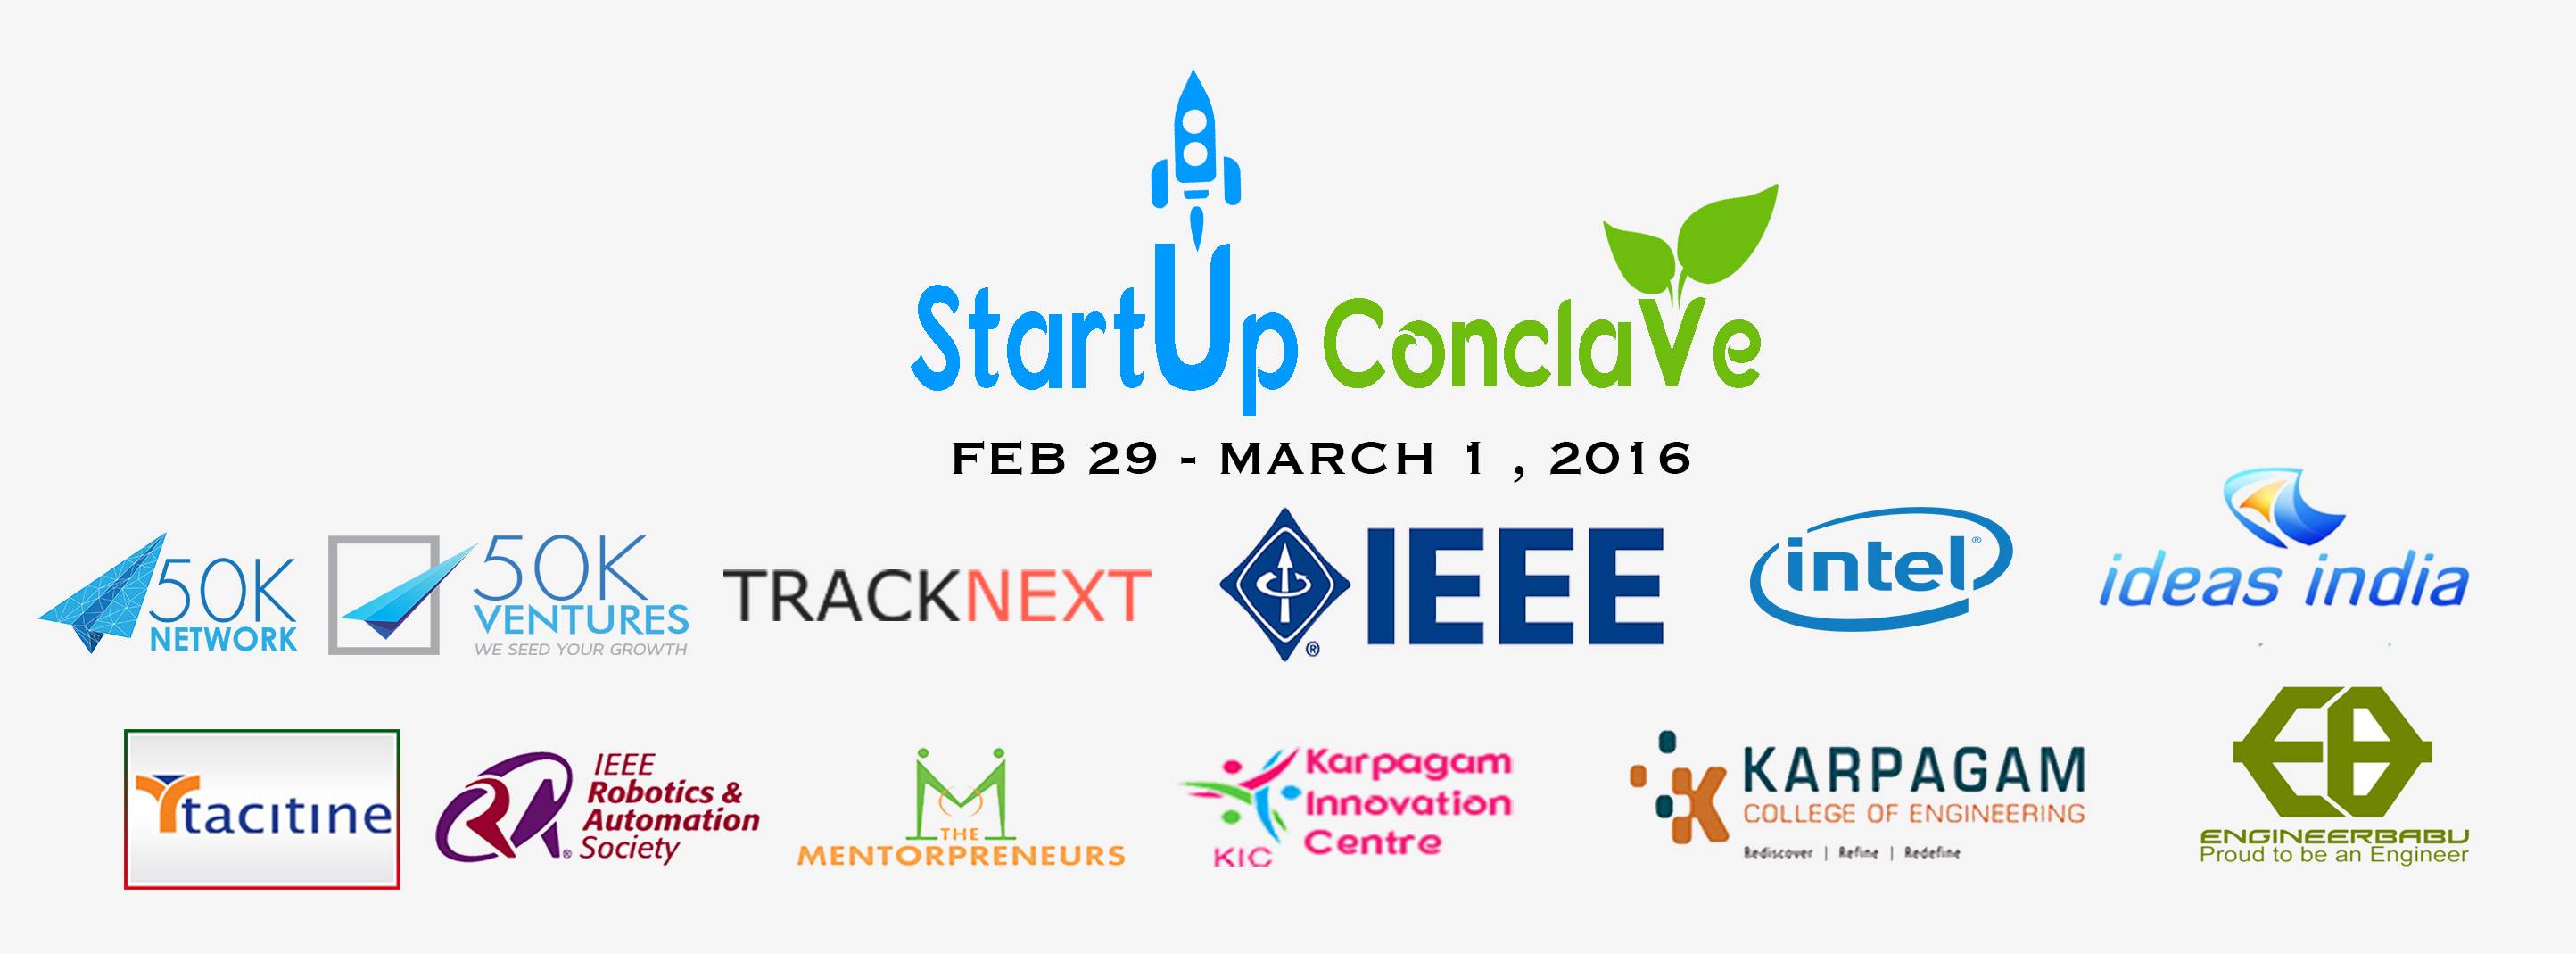 Book Online Tickets for STARTUP CONCLAVE 2016, Coimbatore. Startup Conclave 2016Yes, for the first time in south India, STARTUP CONCLAVE is a chock-a-block two day IEEE SPONSORED conference with a absolute action packed stuff like startups can hurl out, anecdote of remarkable journeys, incredible talks, intr